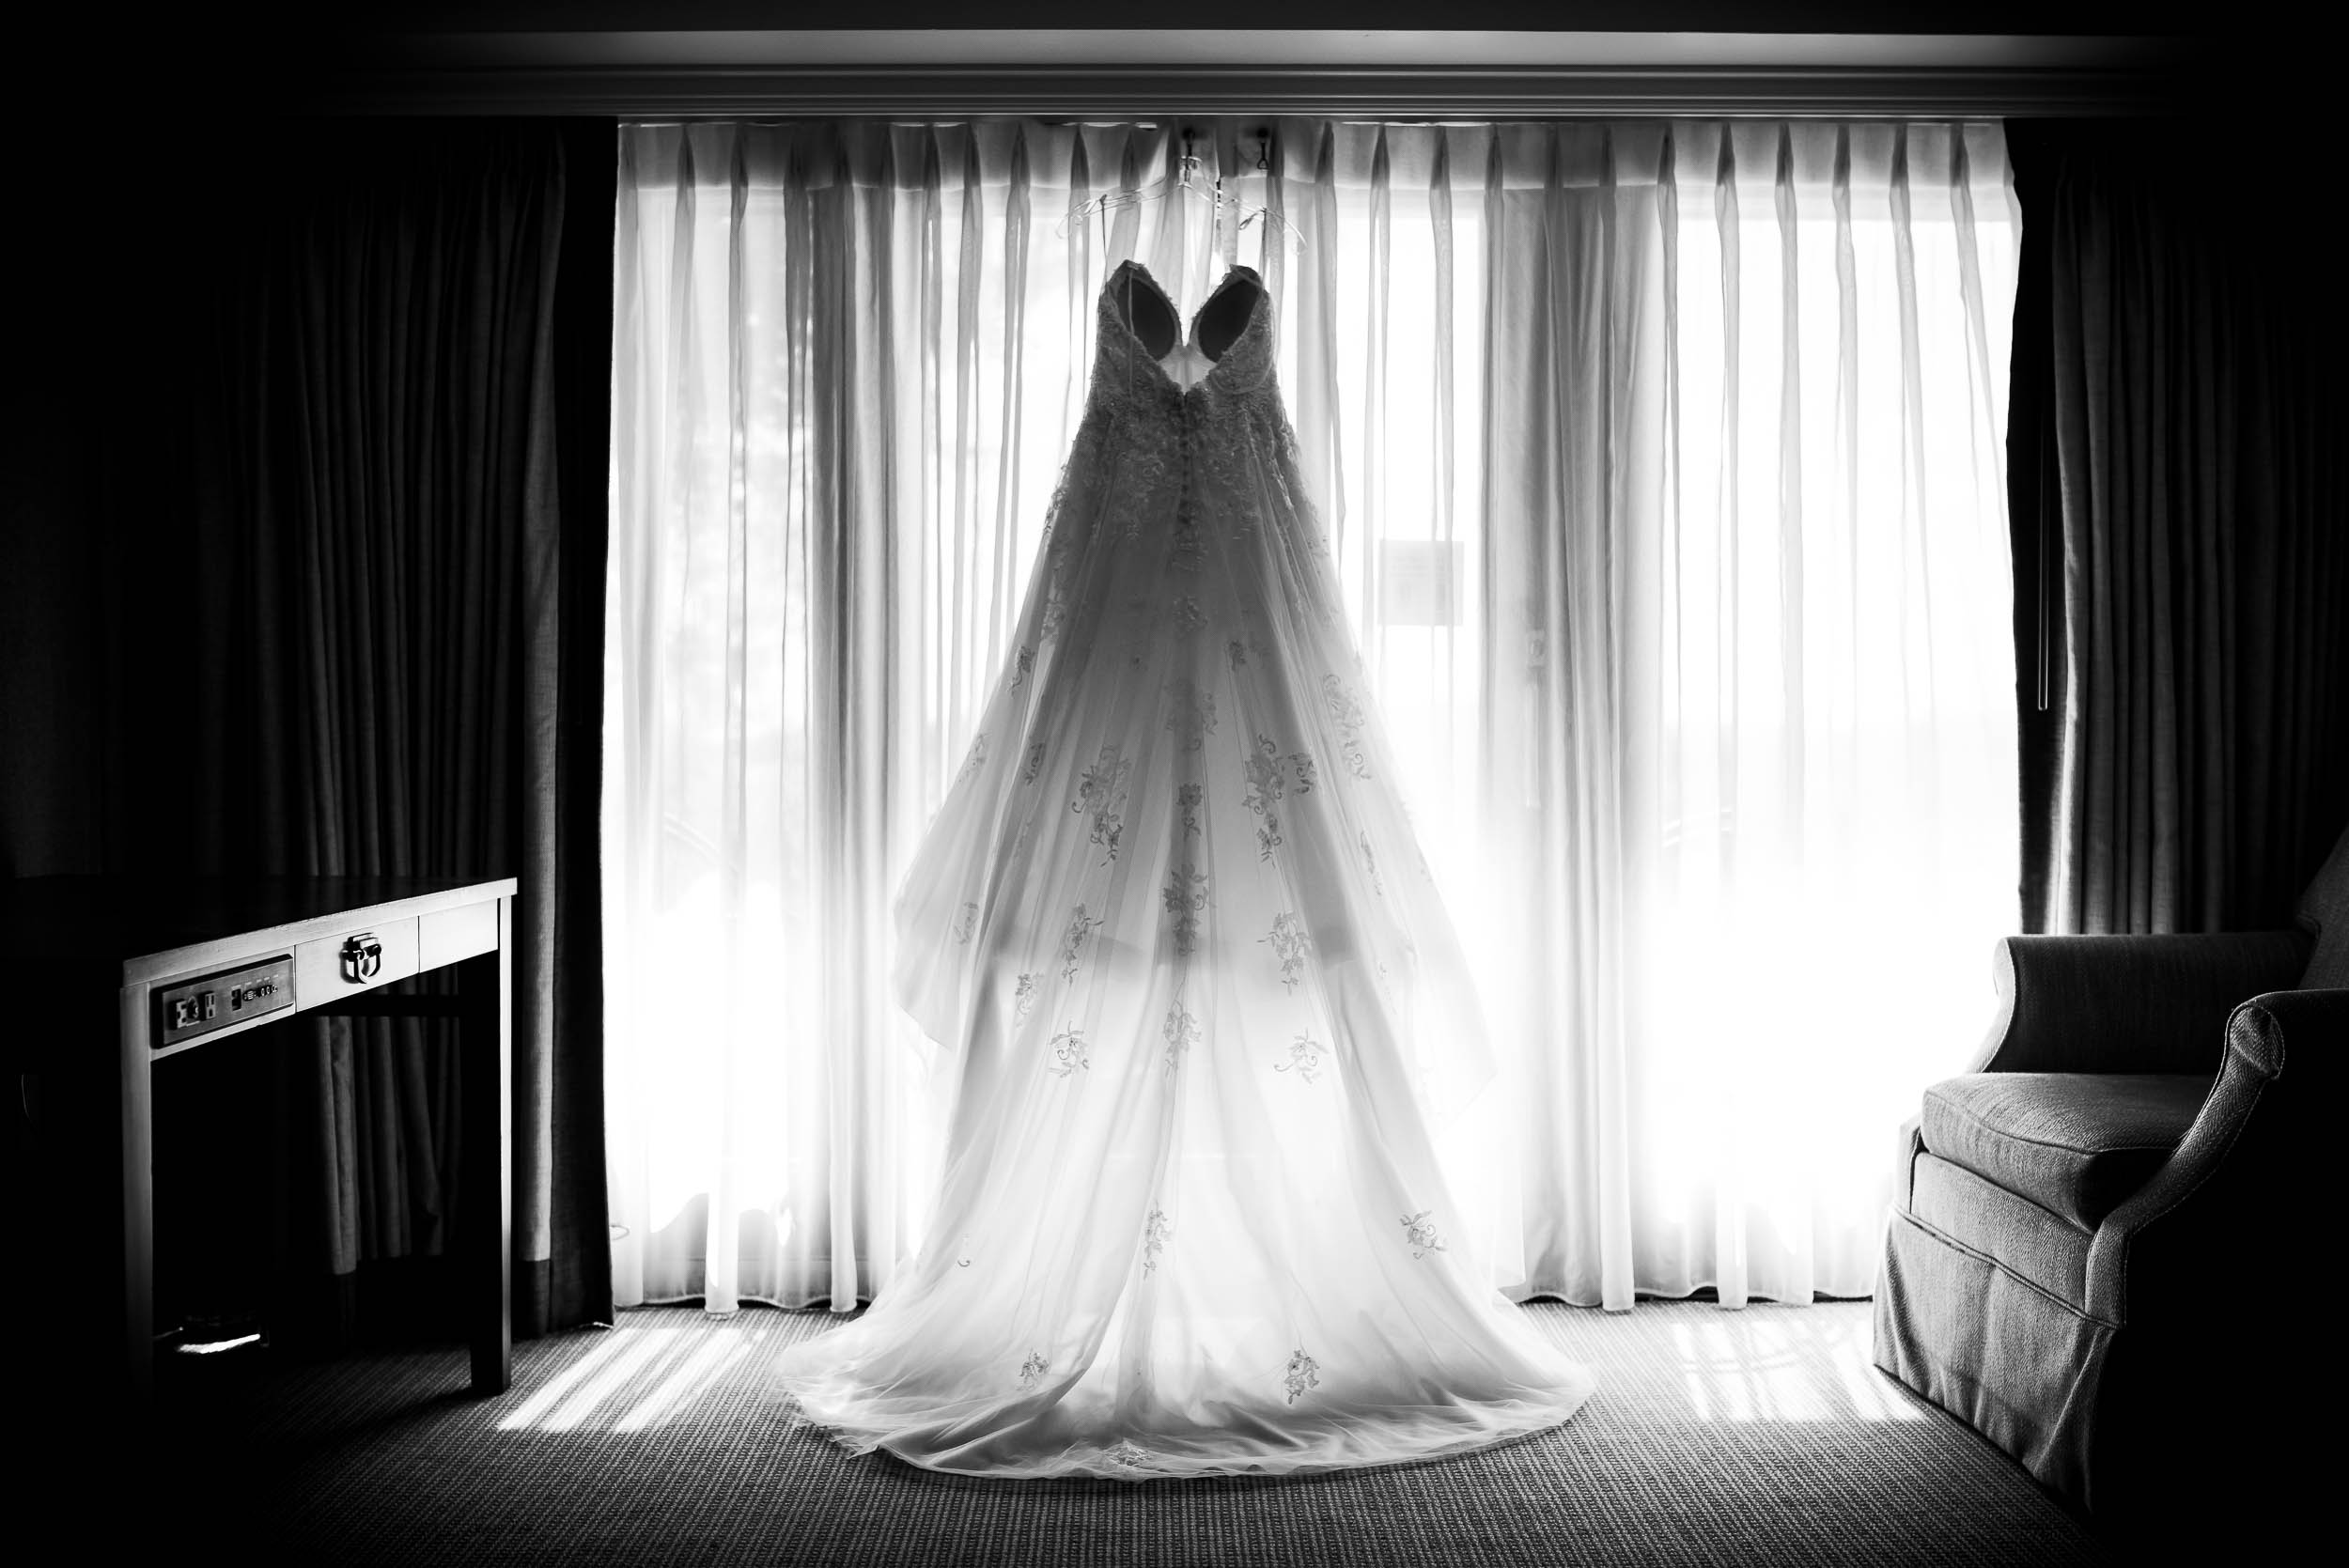 Wedding dress for Grand Geneve Resort Fall Chicago Wedding captured by J. Brown Photography. Visit jbrownphotography.com for more wedding inspiration!